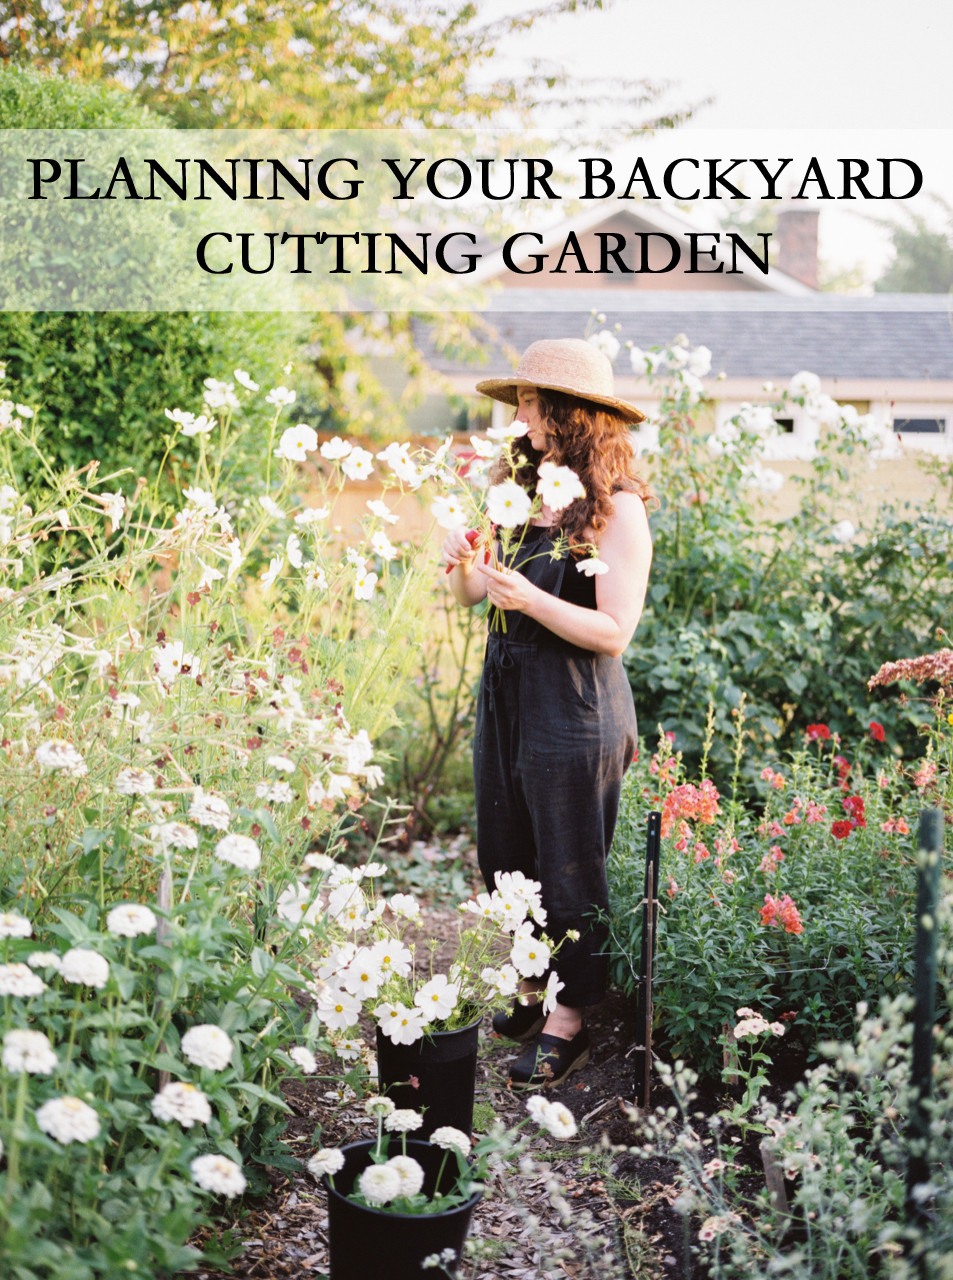 Planning Your Backyard Cutting Garden Workshop at Botanique in Seattle, WA- January 4th, 2020